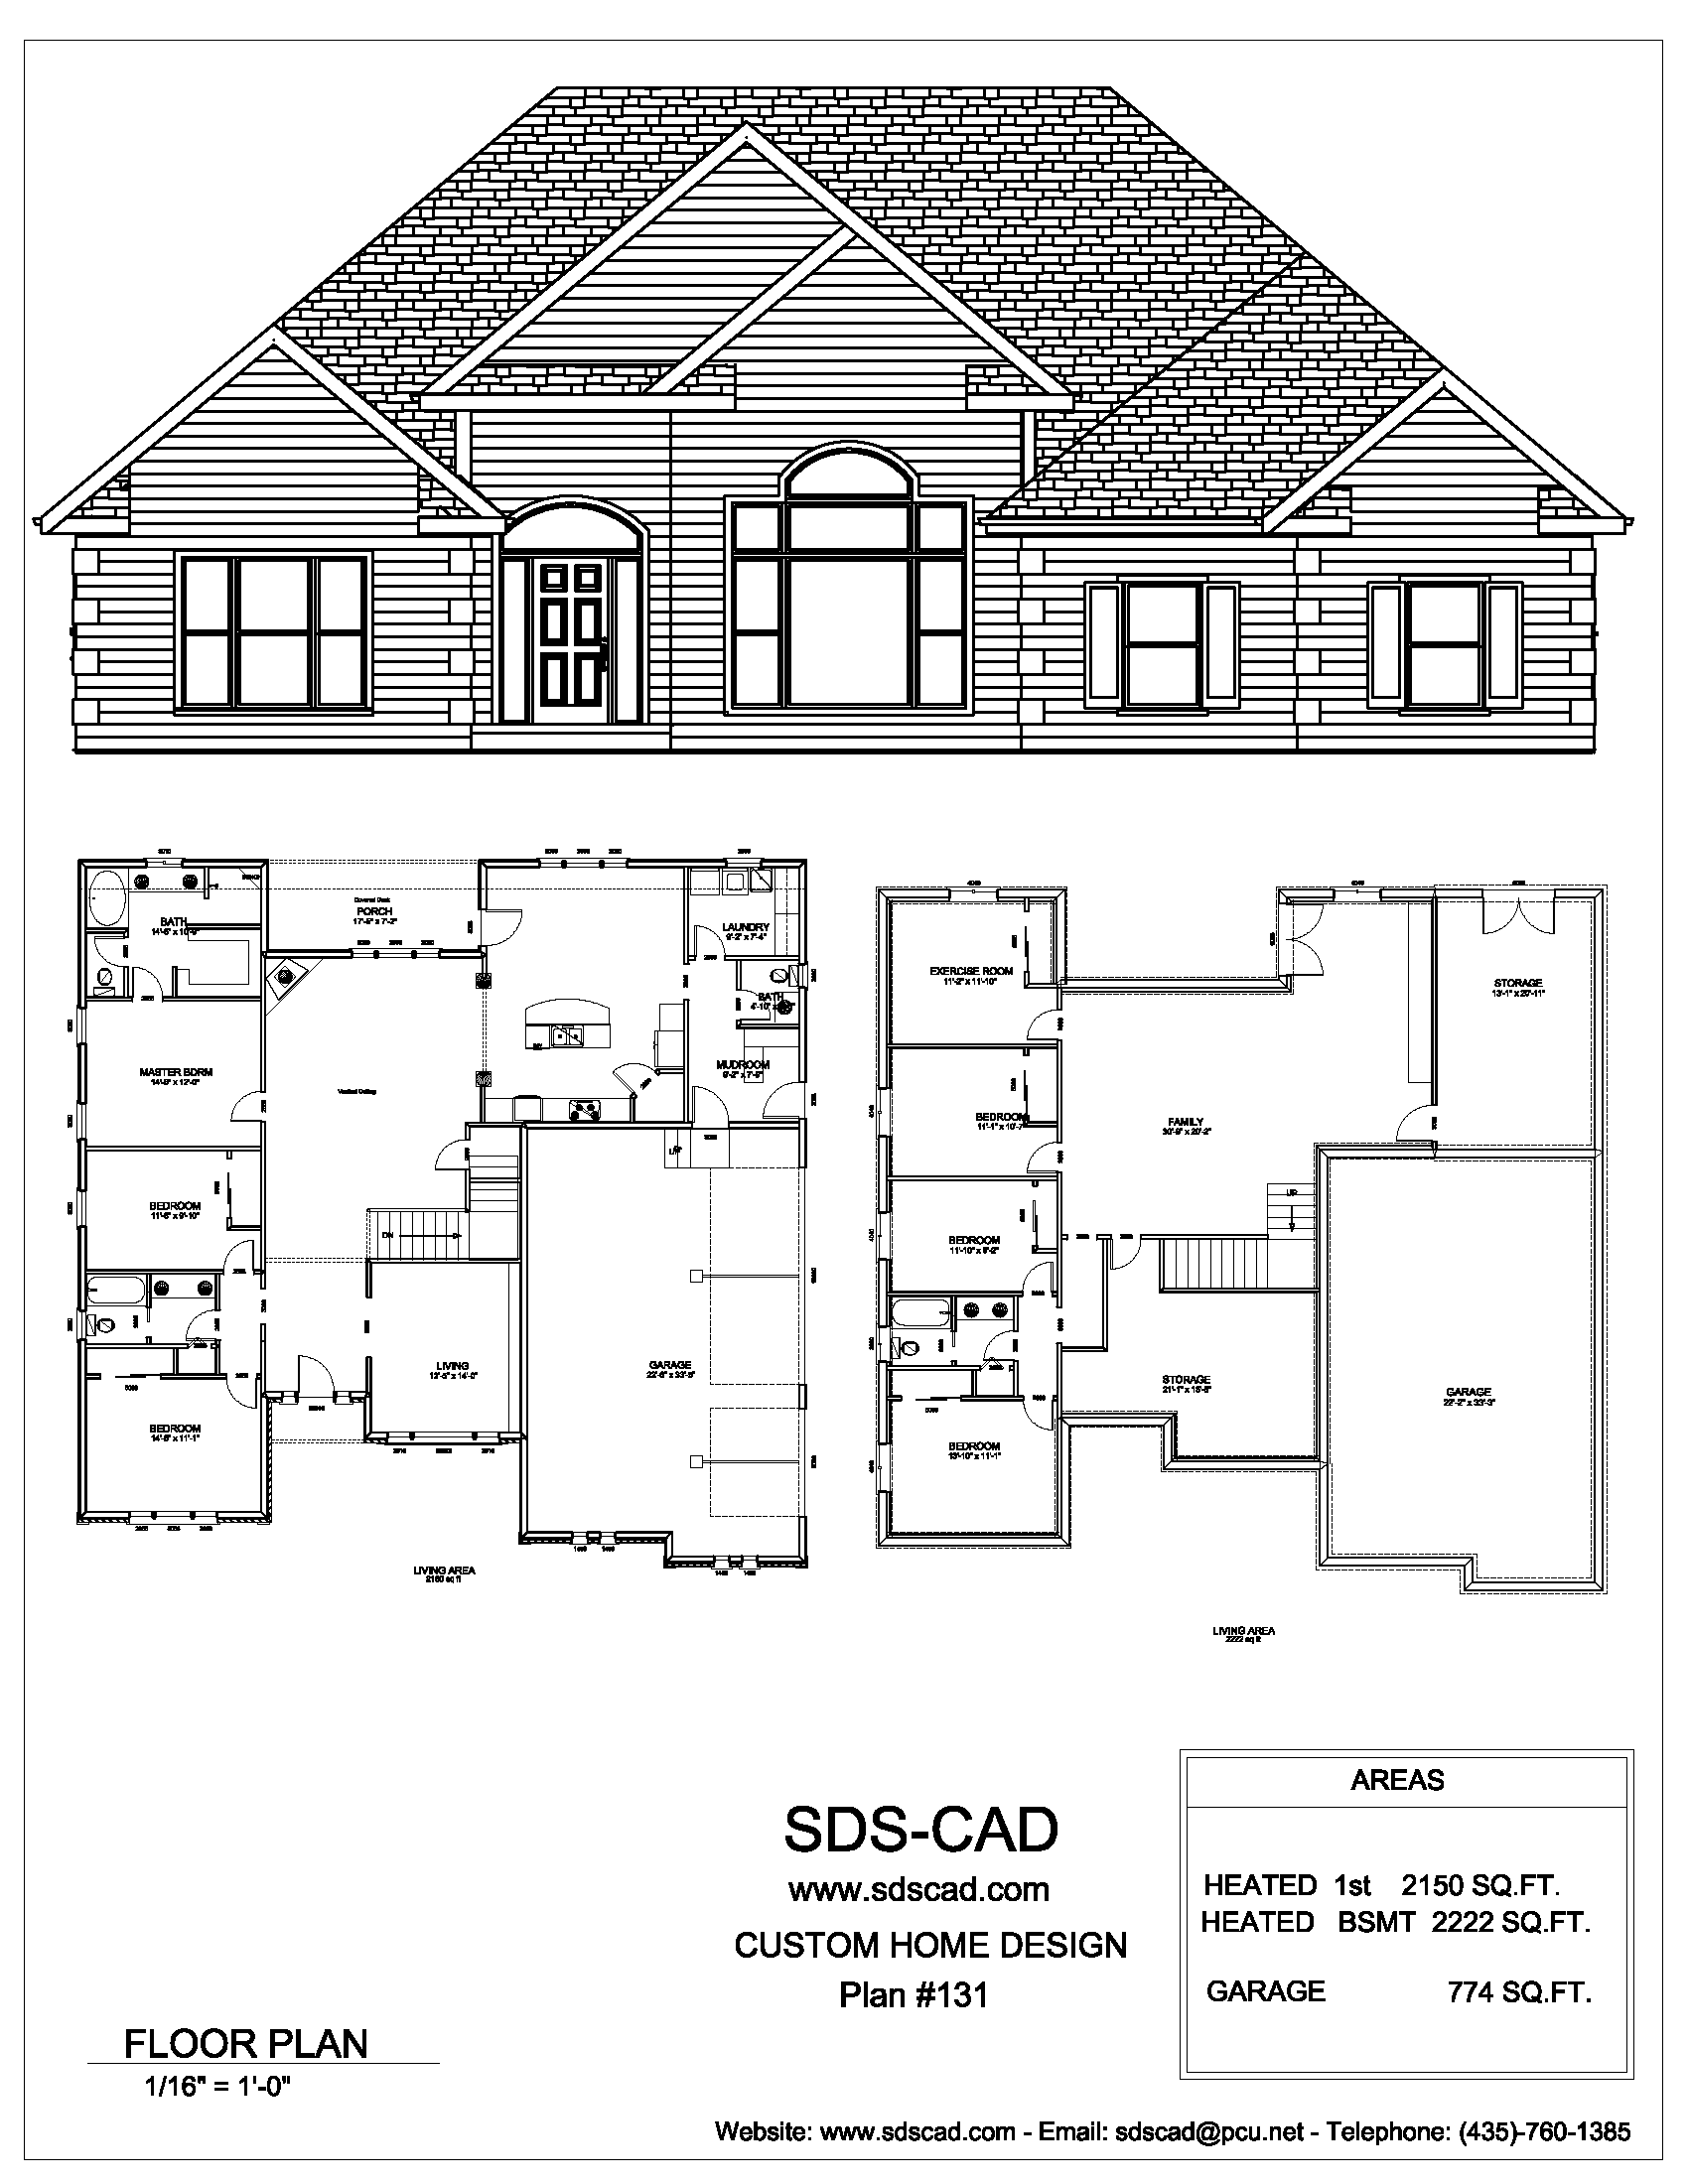 complete house plans blueprints construction documents from sdscad ...